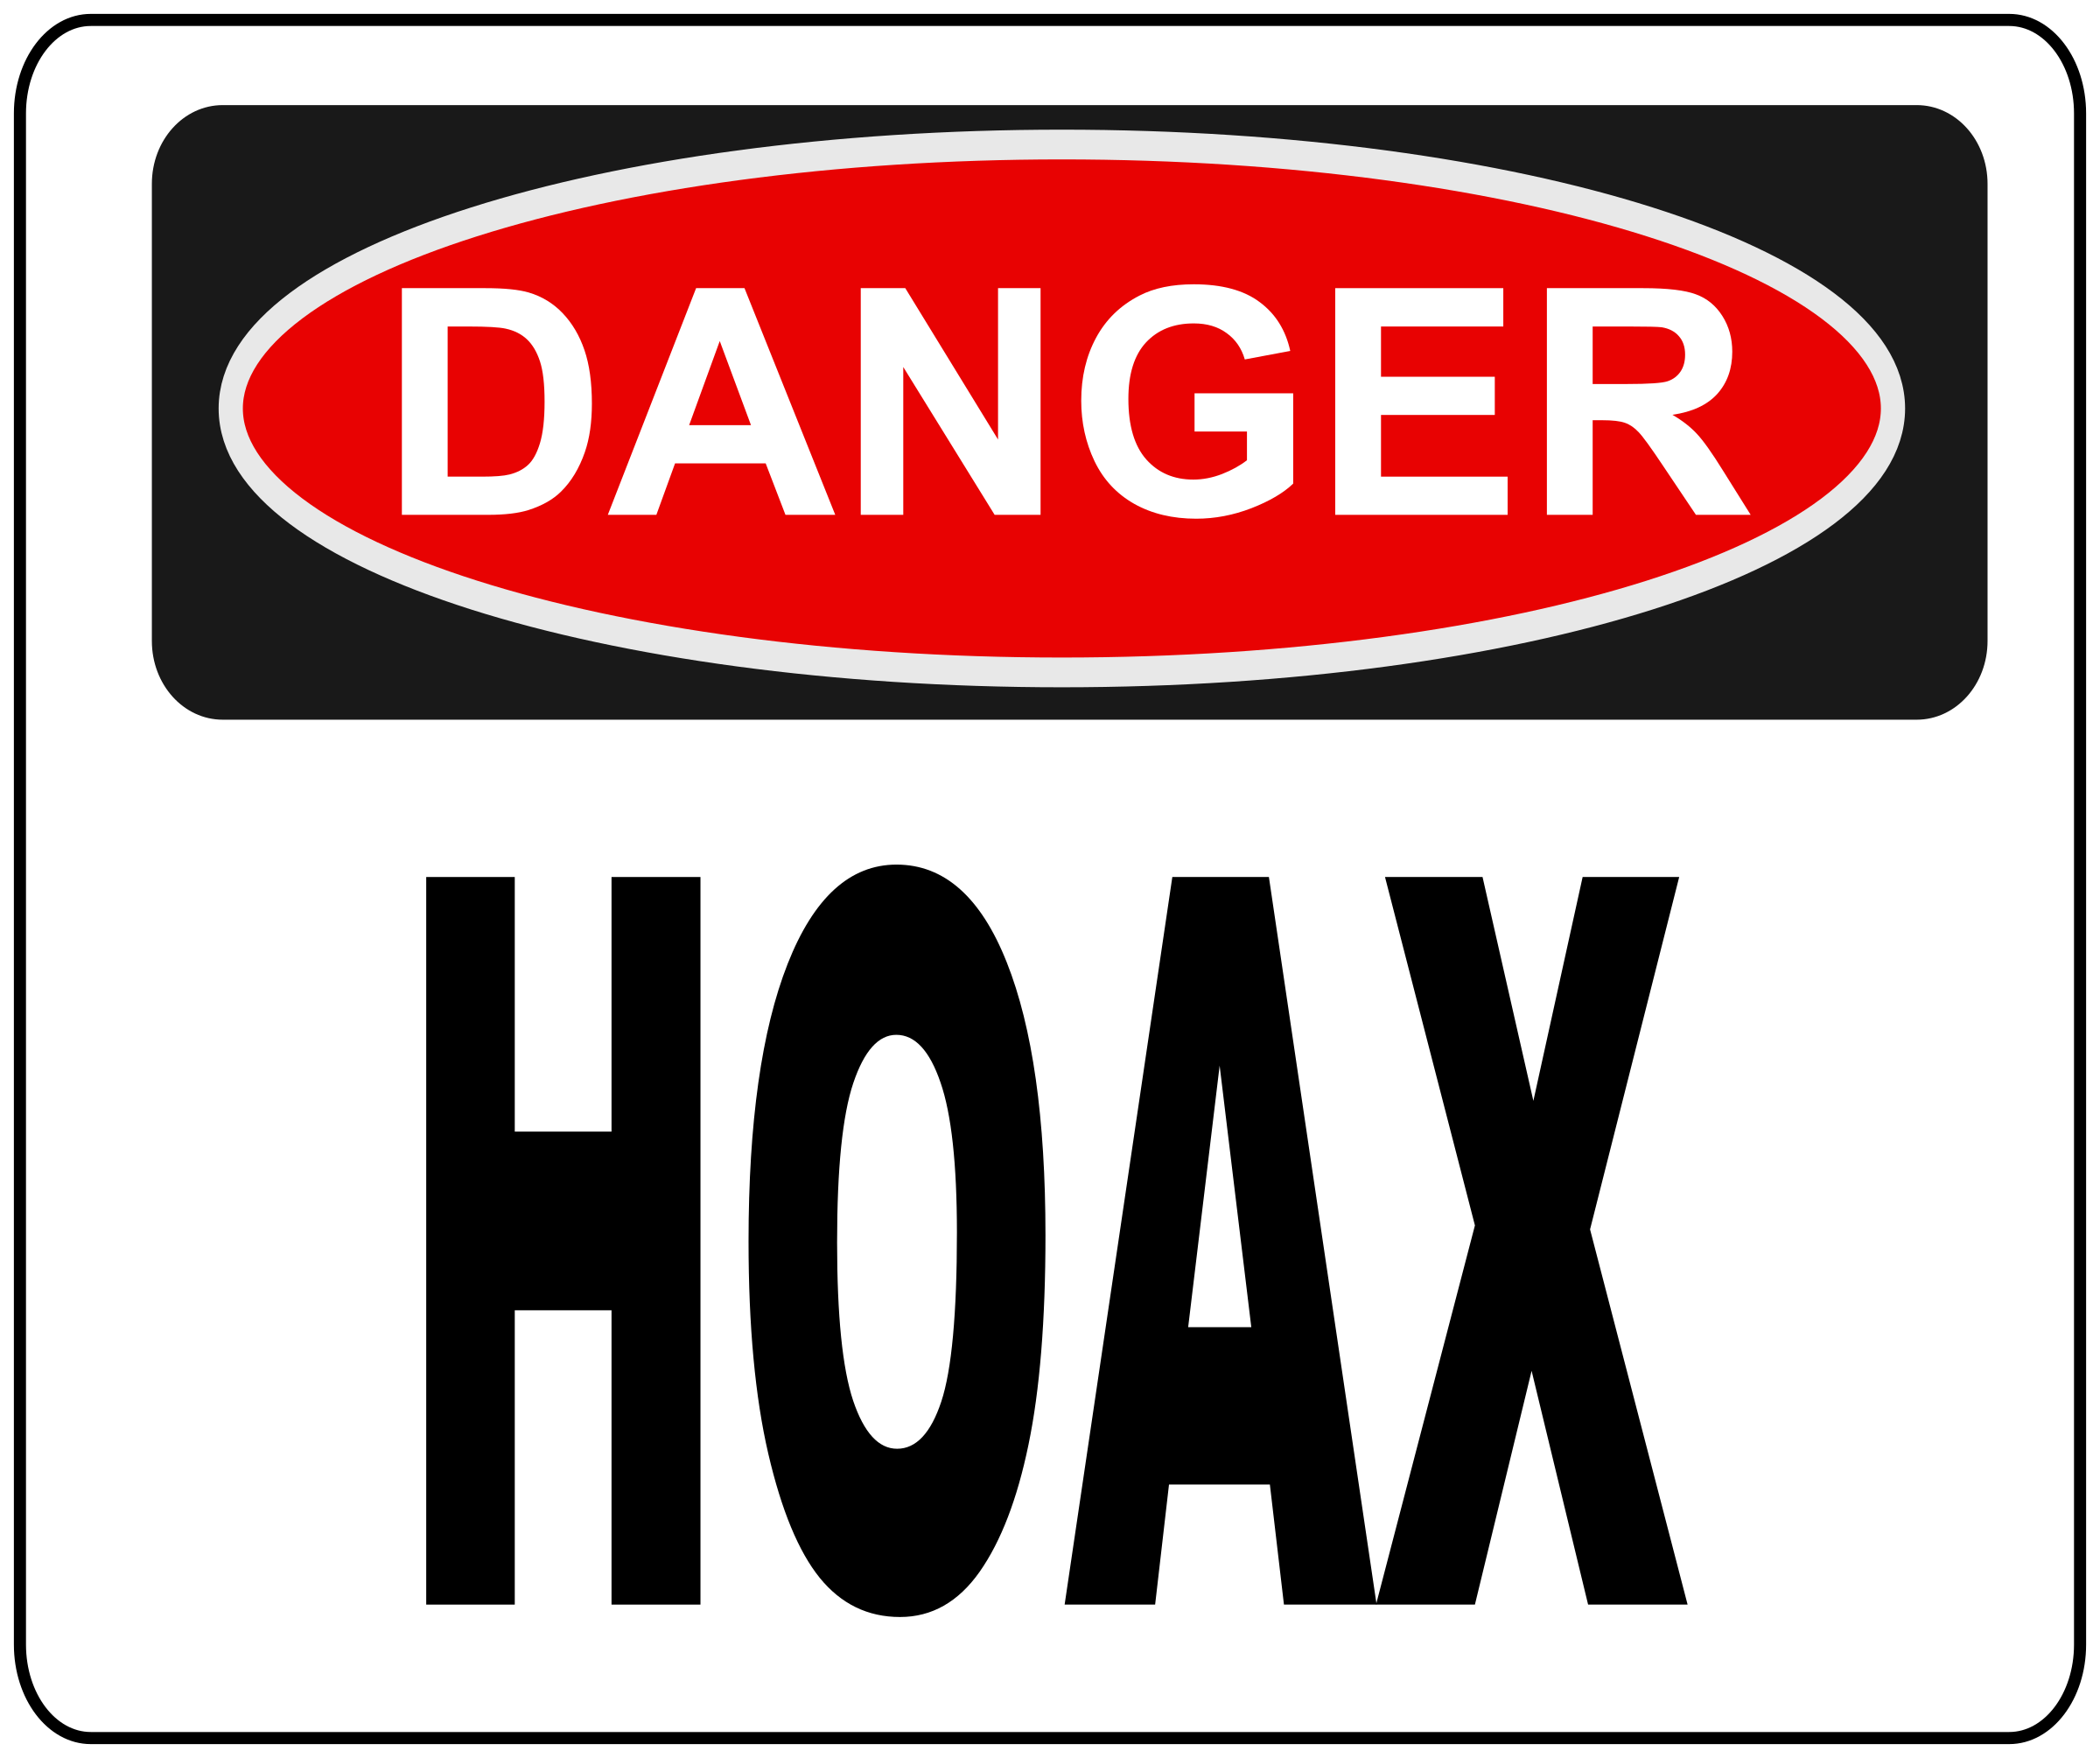 Photo of sign with danger and hoax printed on it.